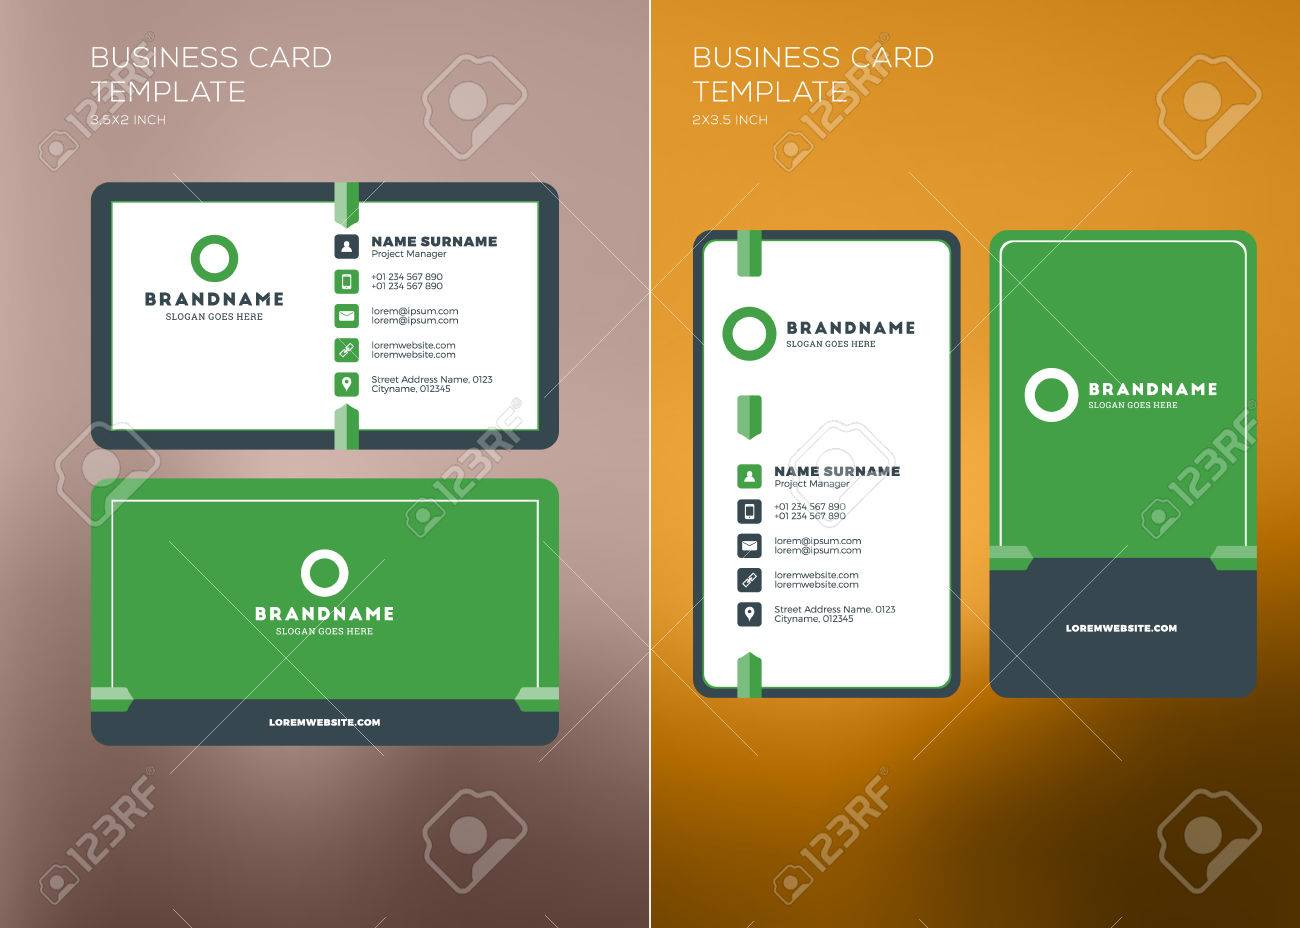 Corporate business card print template personal visiting card corporate business card print template personal visiting card with company logo vertical and horizontal flashek Gallery